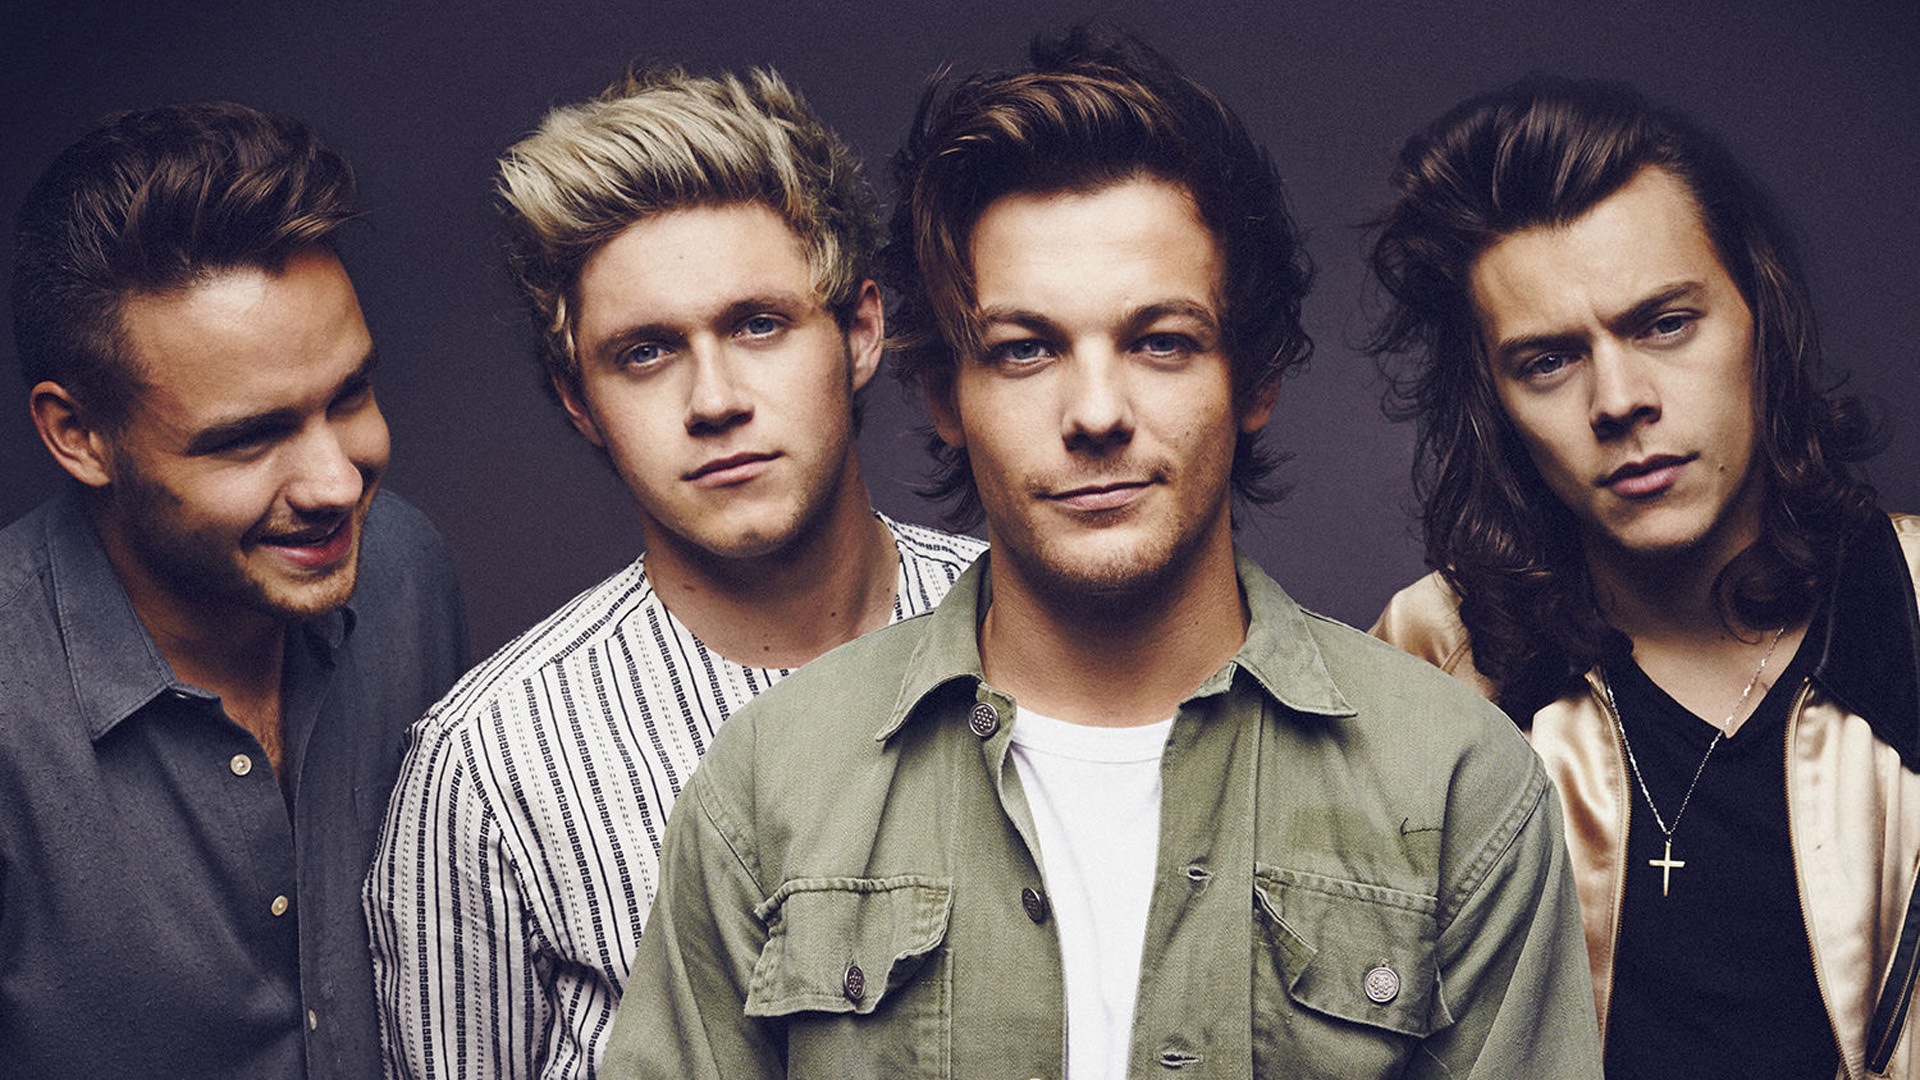 Top Download One Direction Wallpapers 1920x1080